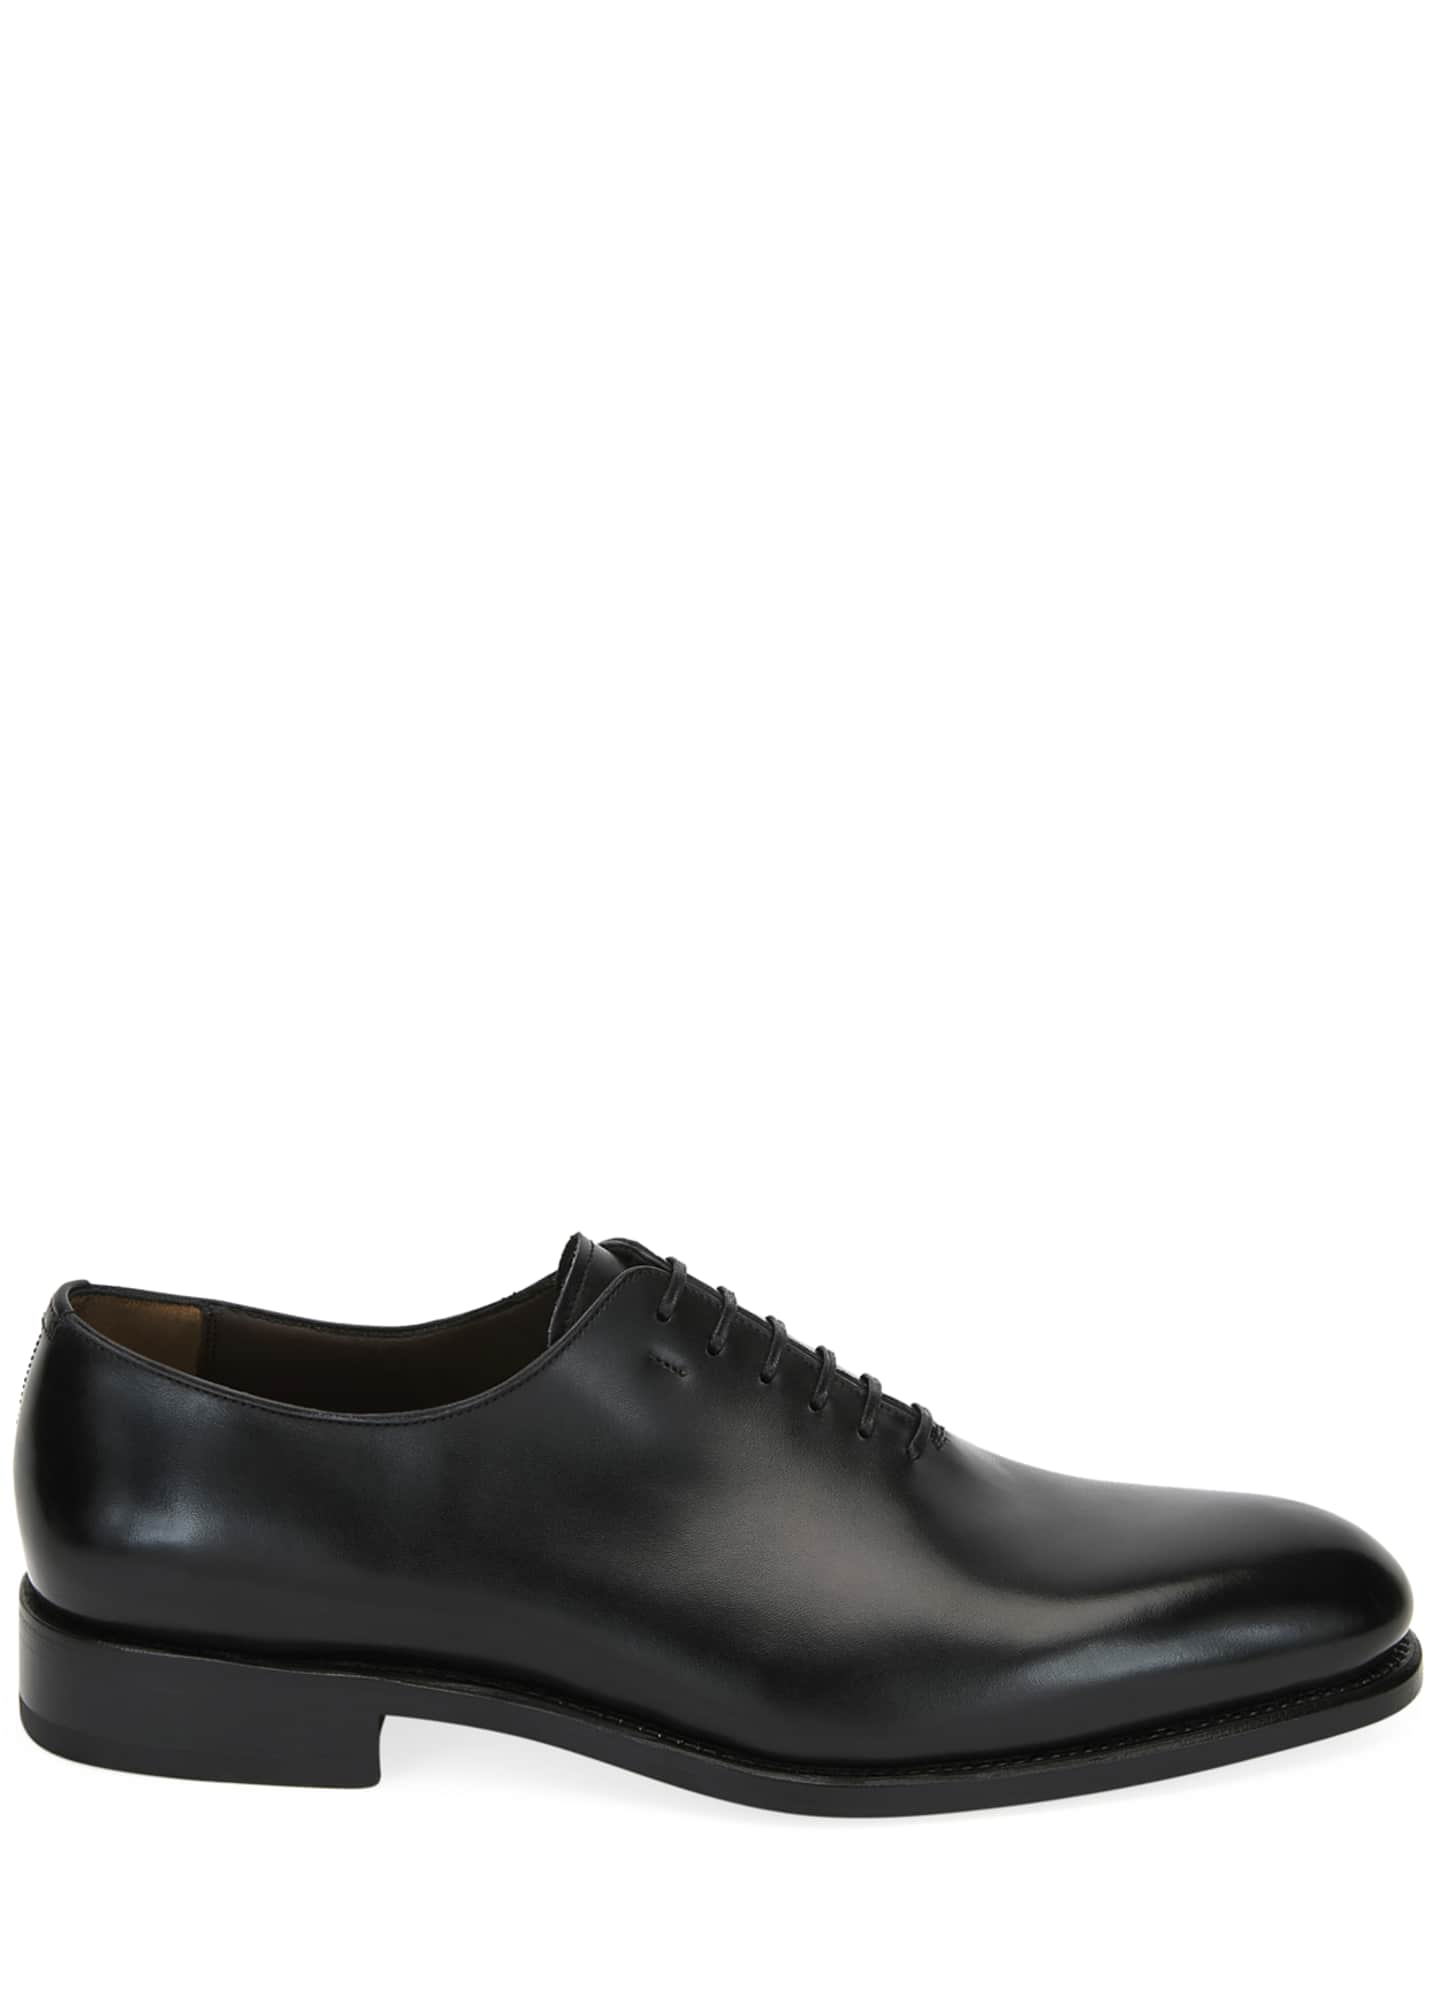 Image 2 of 3: Men's Amsterdam Calfskin Lace-Up Shoes